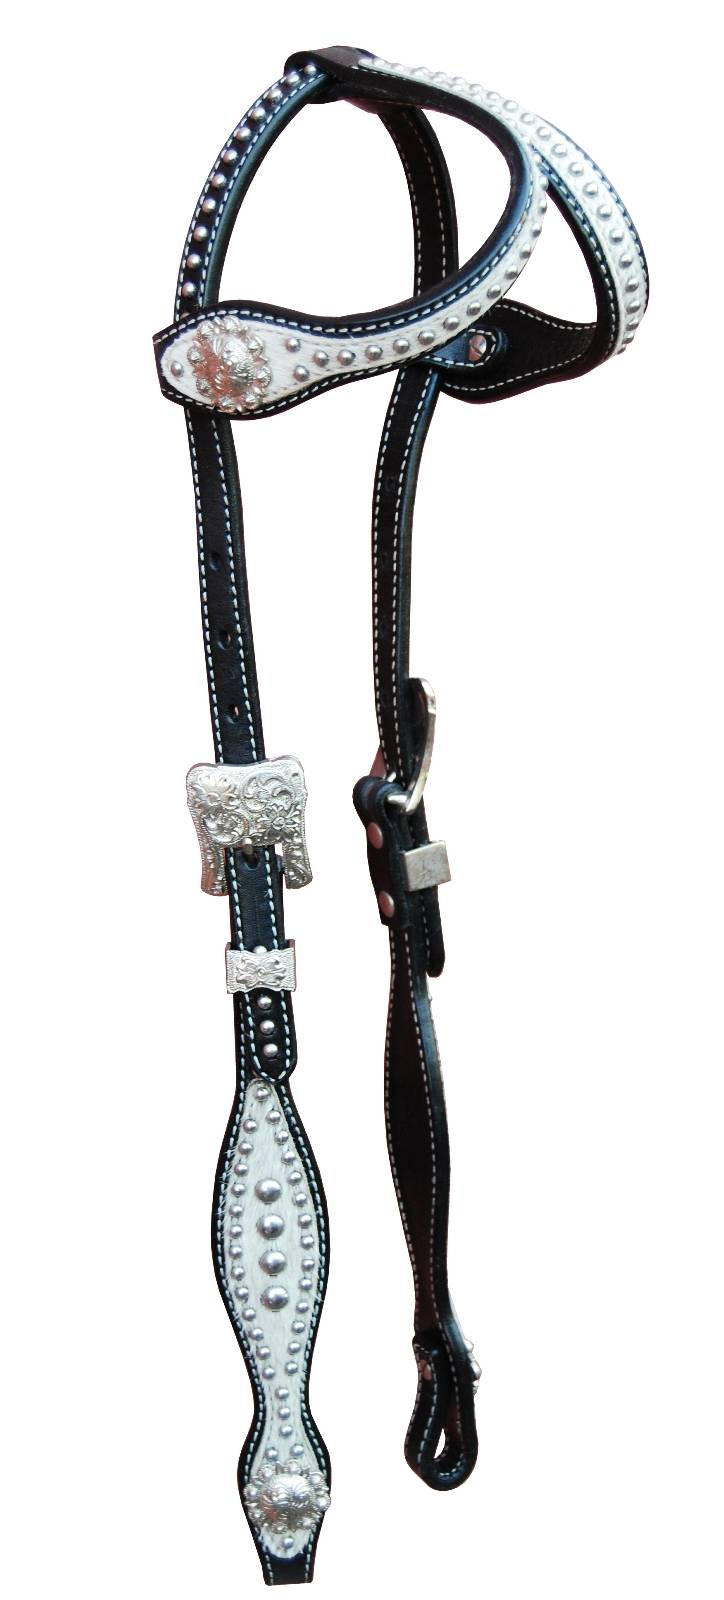 Turn-Two Equine Abilene Double Ear Headstall